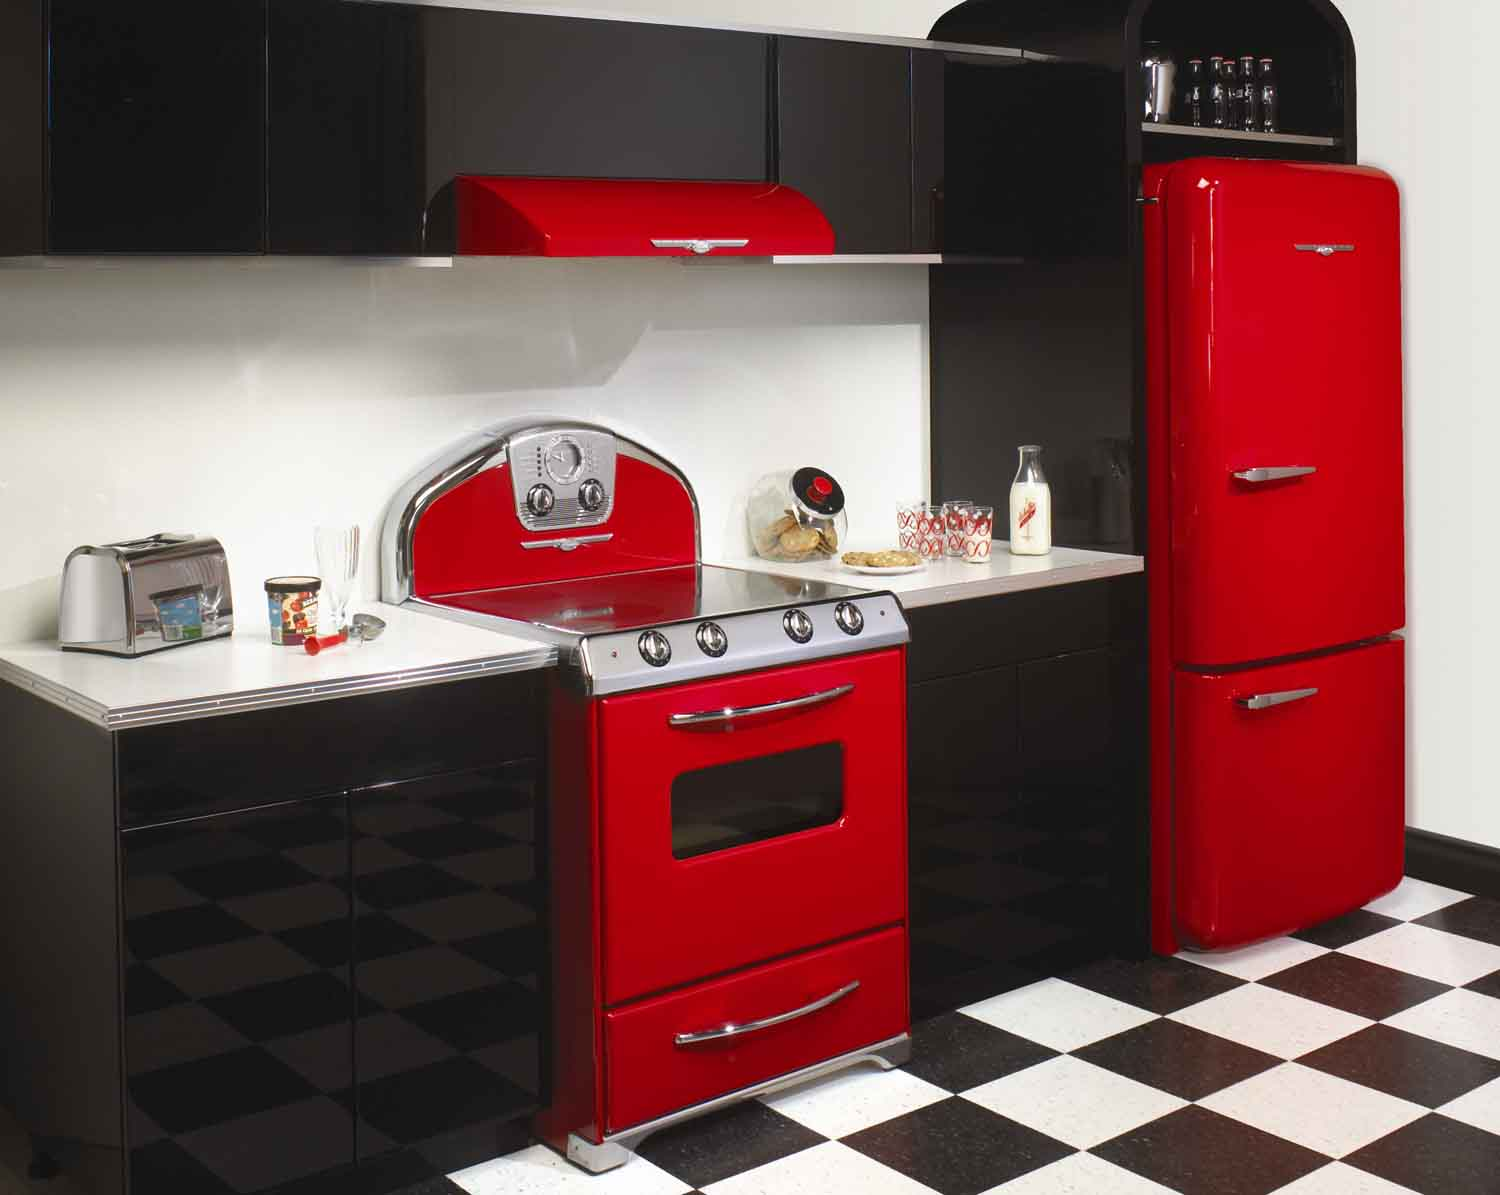 Model Style Kitchen Red And Wite : ... designs from red lipstick to themed diners serving classic fifties